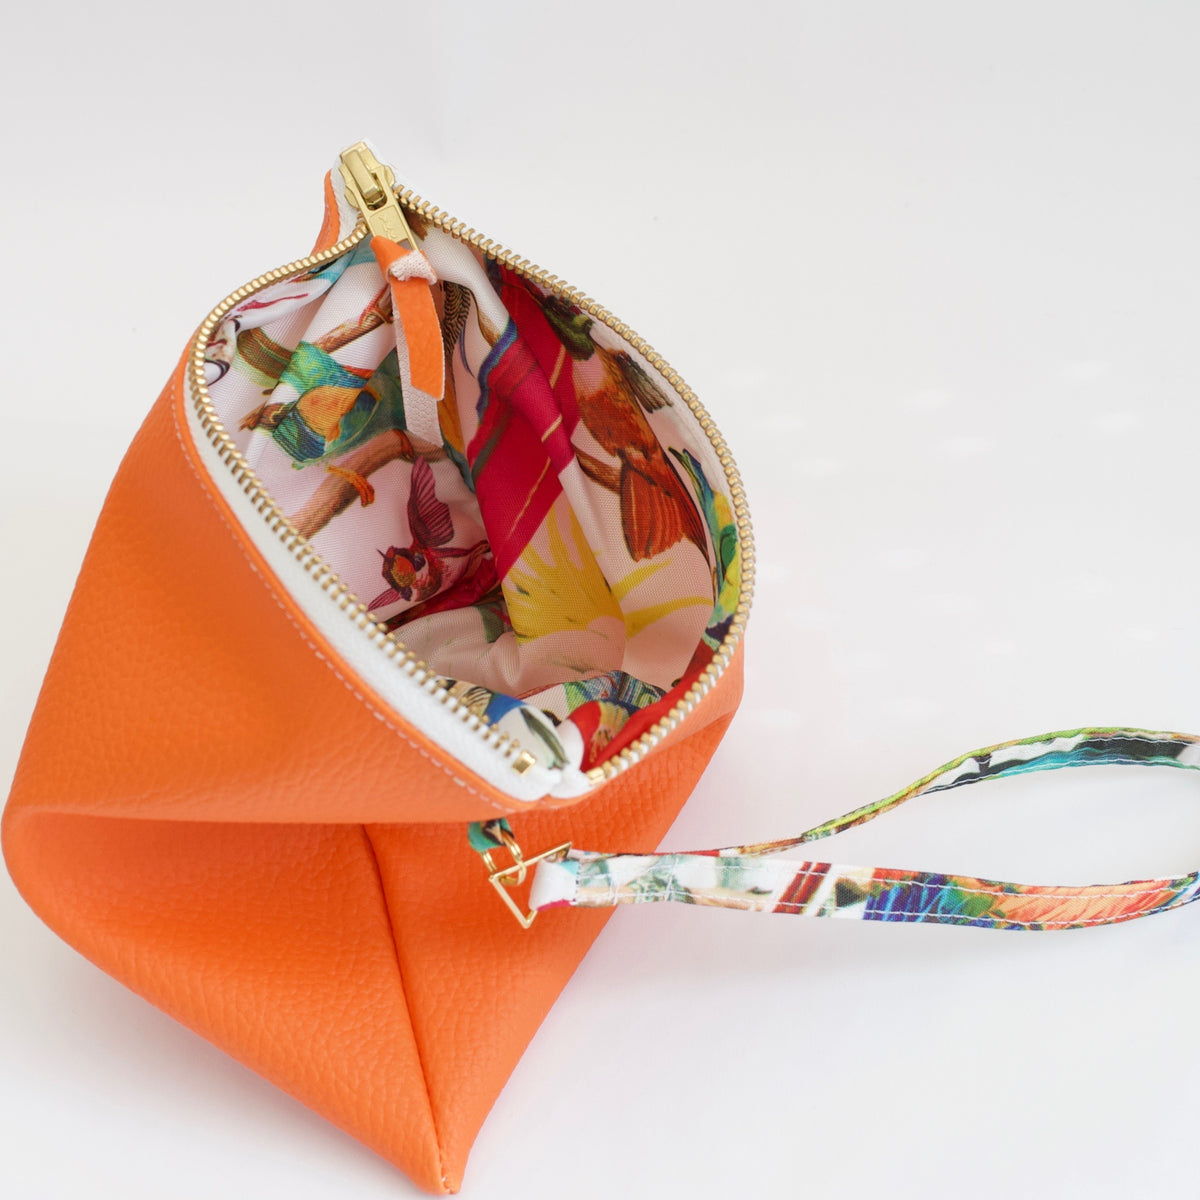 Limited Edition Orange Clutch Bag from Faux Leather with Water Resistant Lining